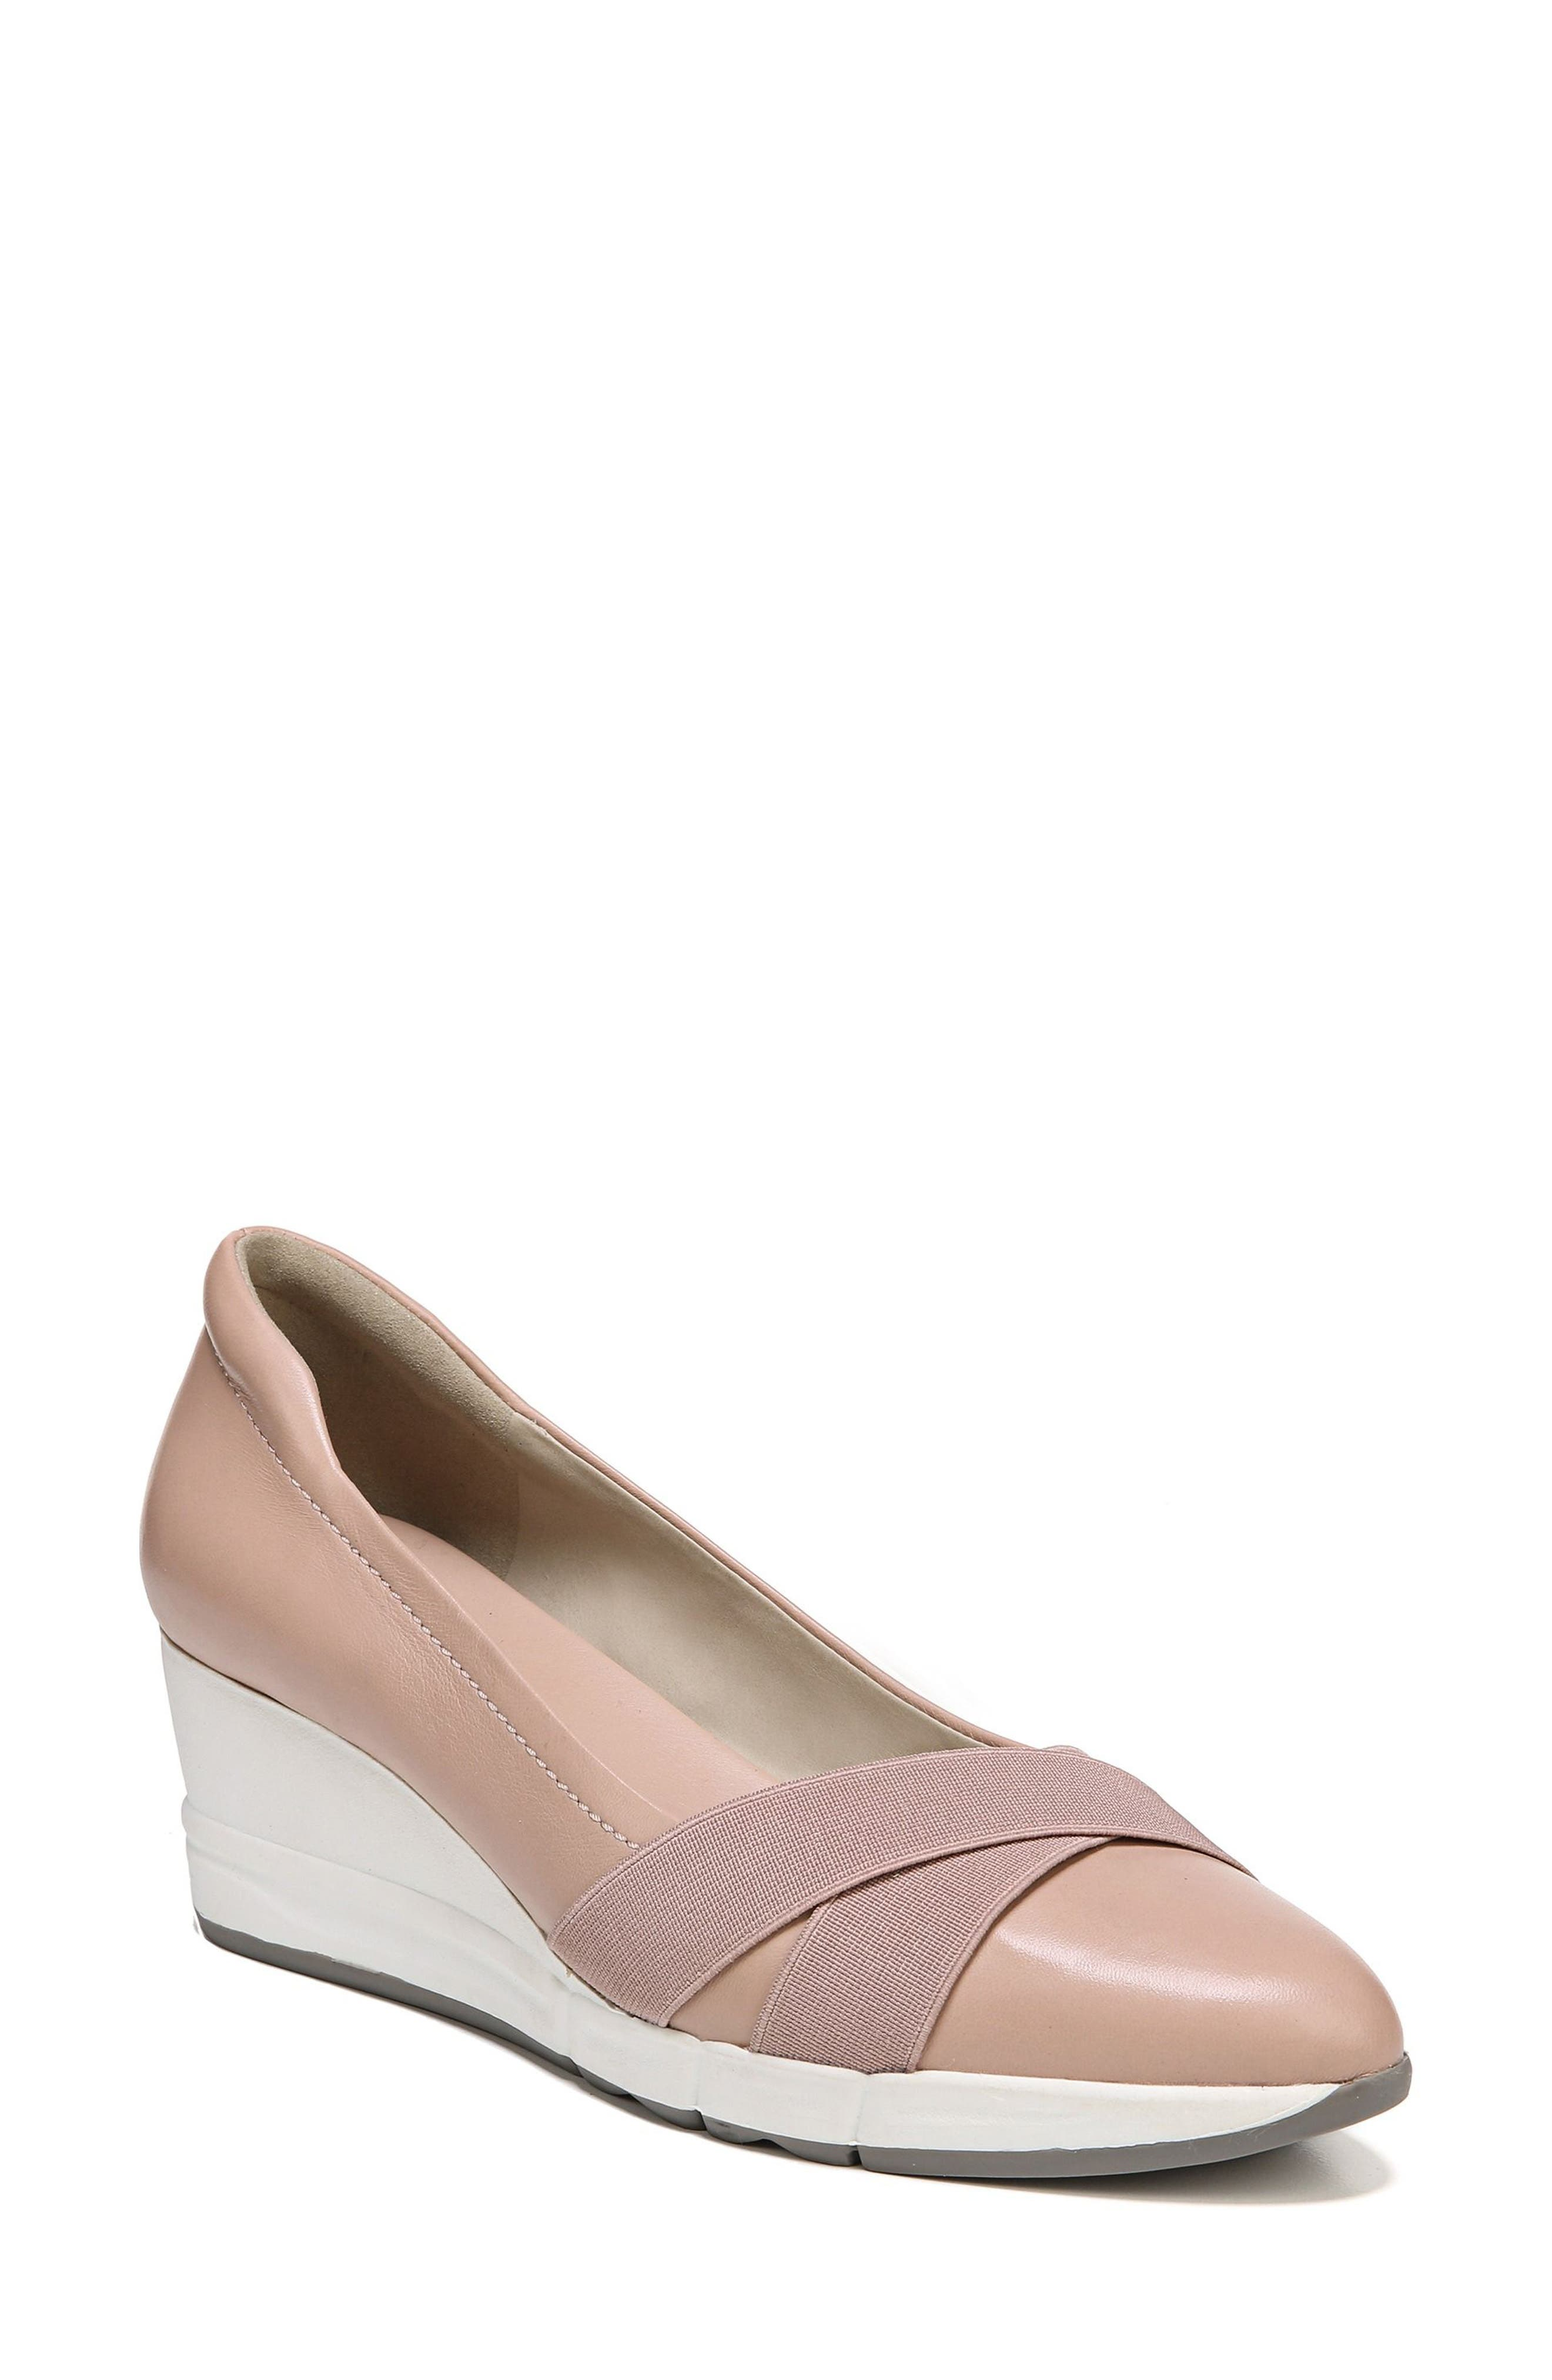 Harlyn Wedge Pump,                         Main,                         color, Mauve Leather